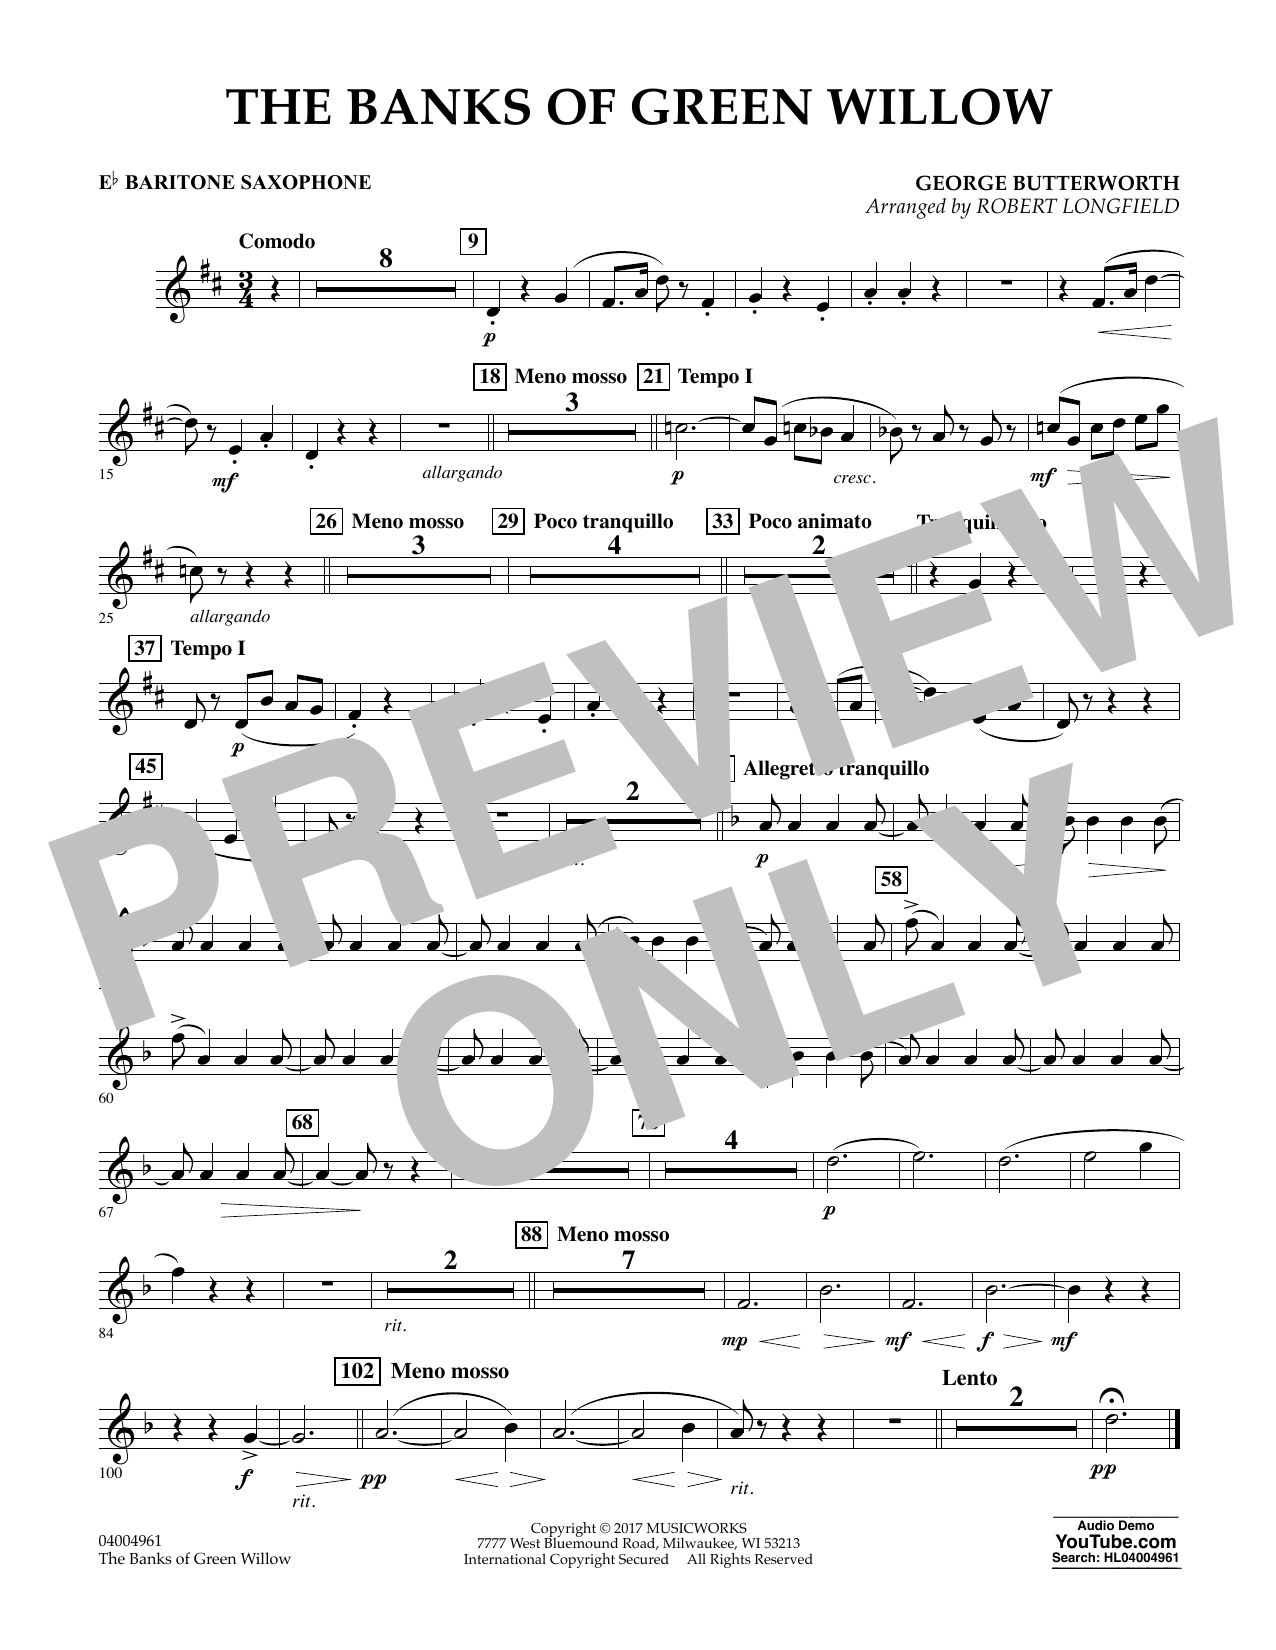 Robert Longfield The Banks of Green Willow - Eb Baritone Saxophone sheet music notes and chords. Download Printable PDF.